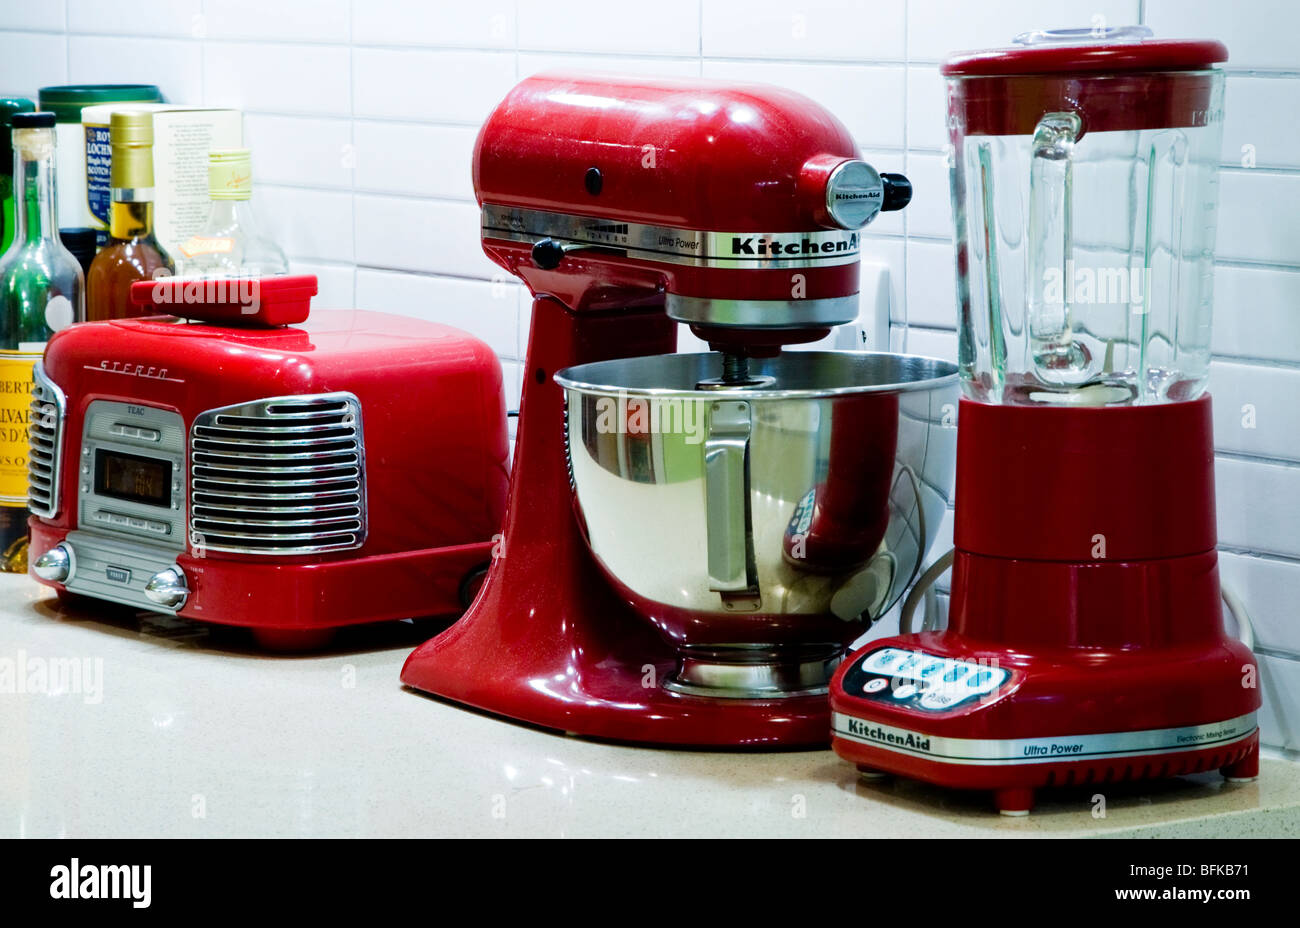 Red retro kitchen appliances on a worktop by KitchenAid ...